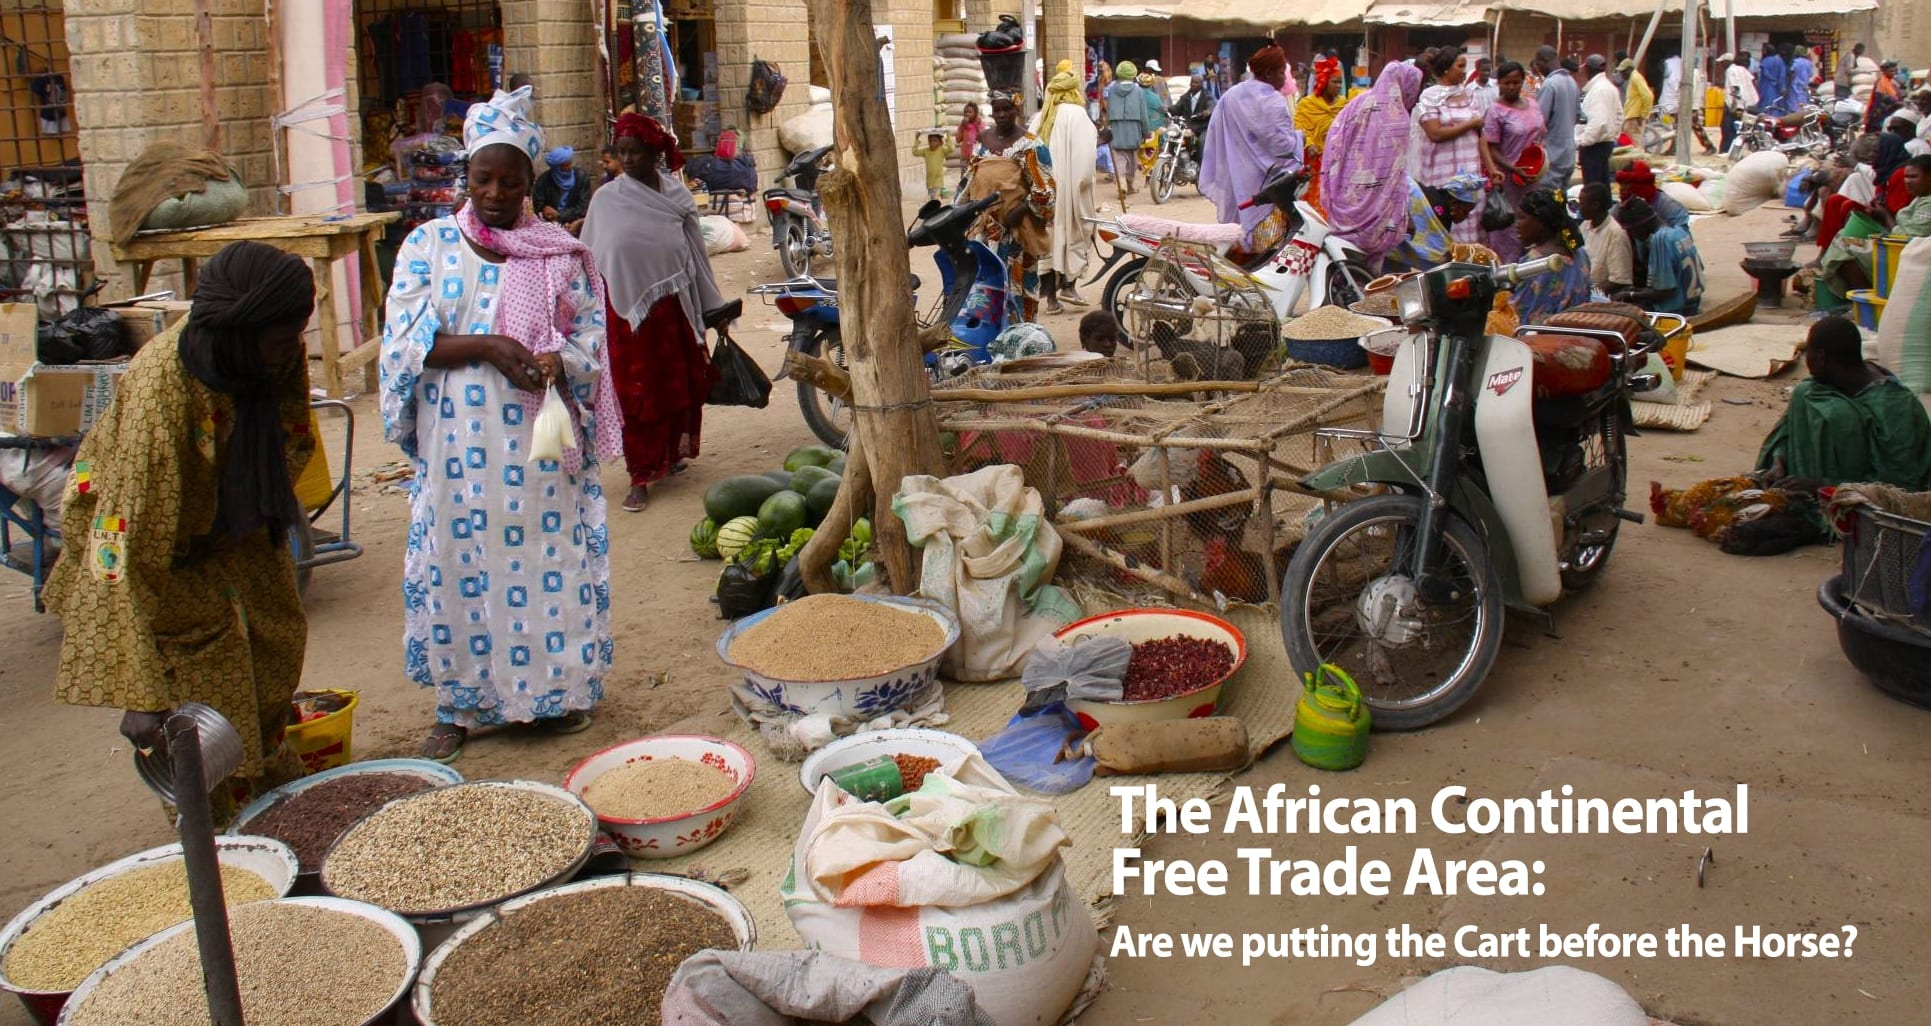 The African Continental Free Trade Area: Are we putting the Cart before the Horse?